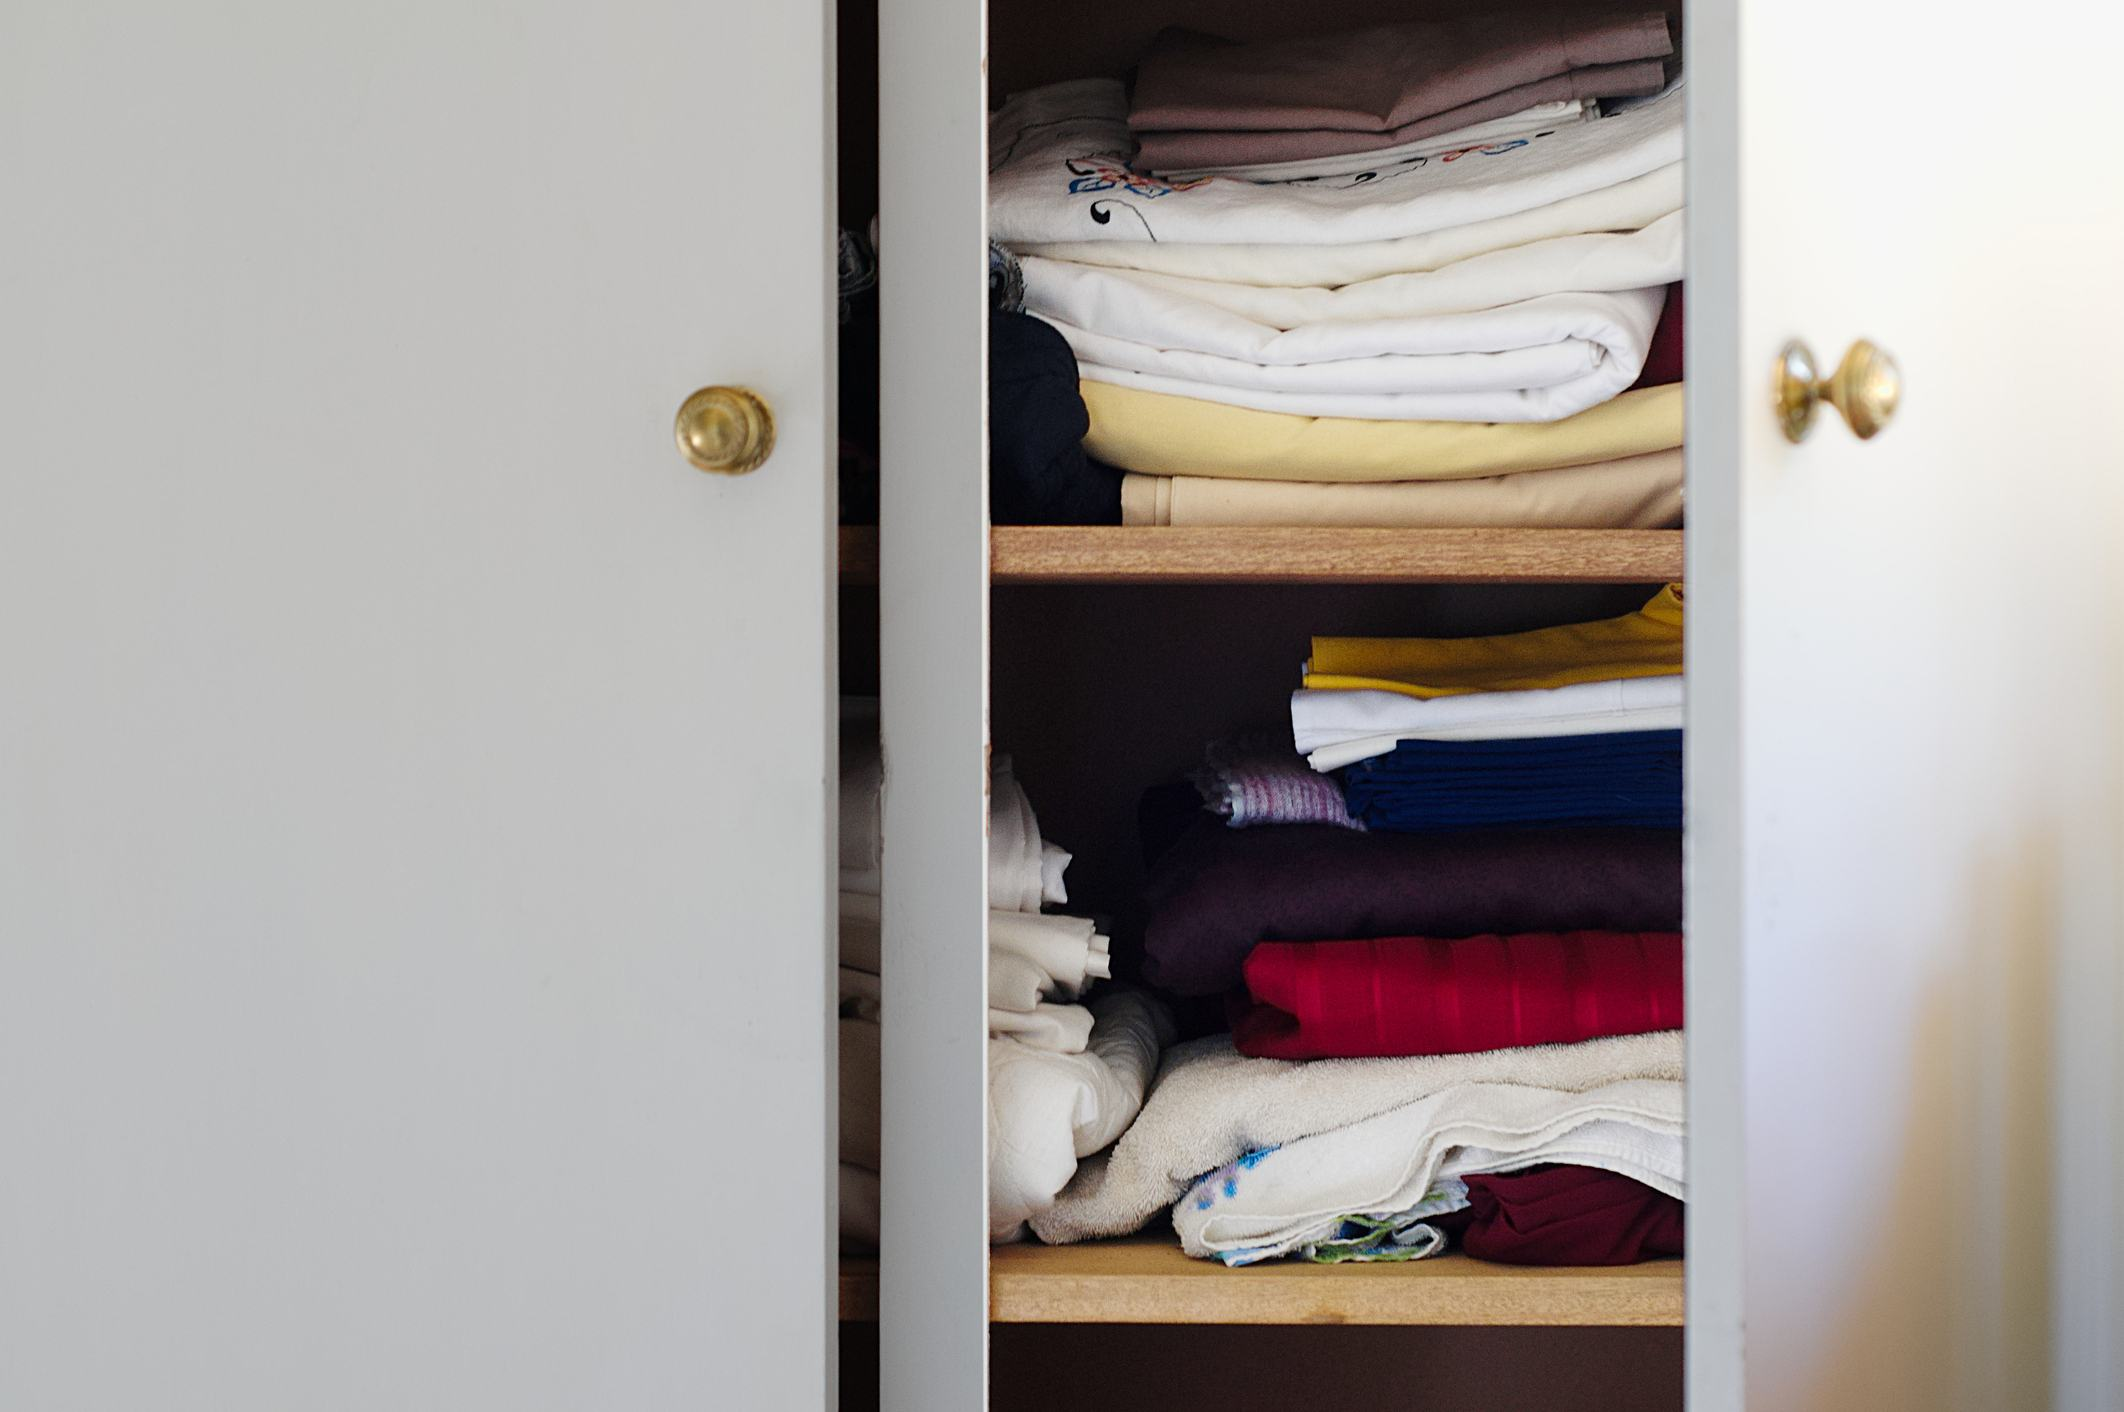 Sheets in linen closet